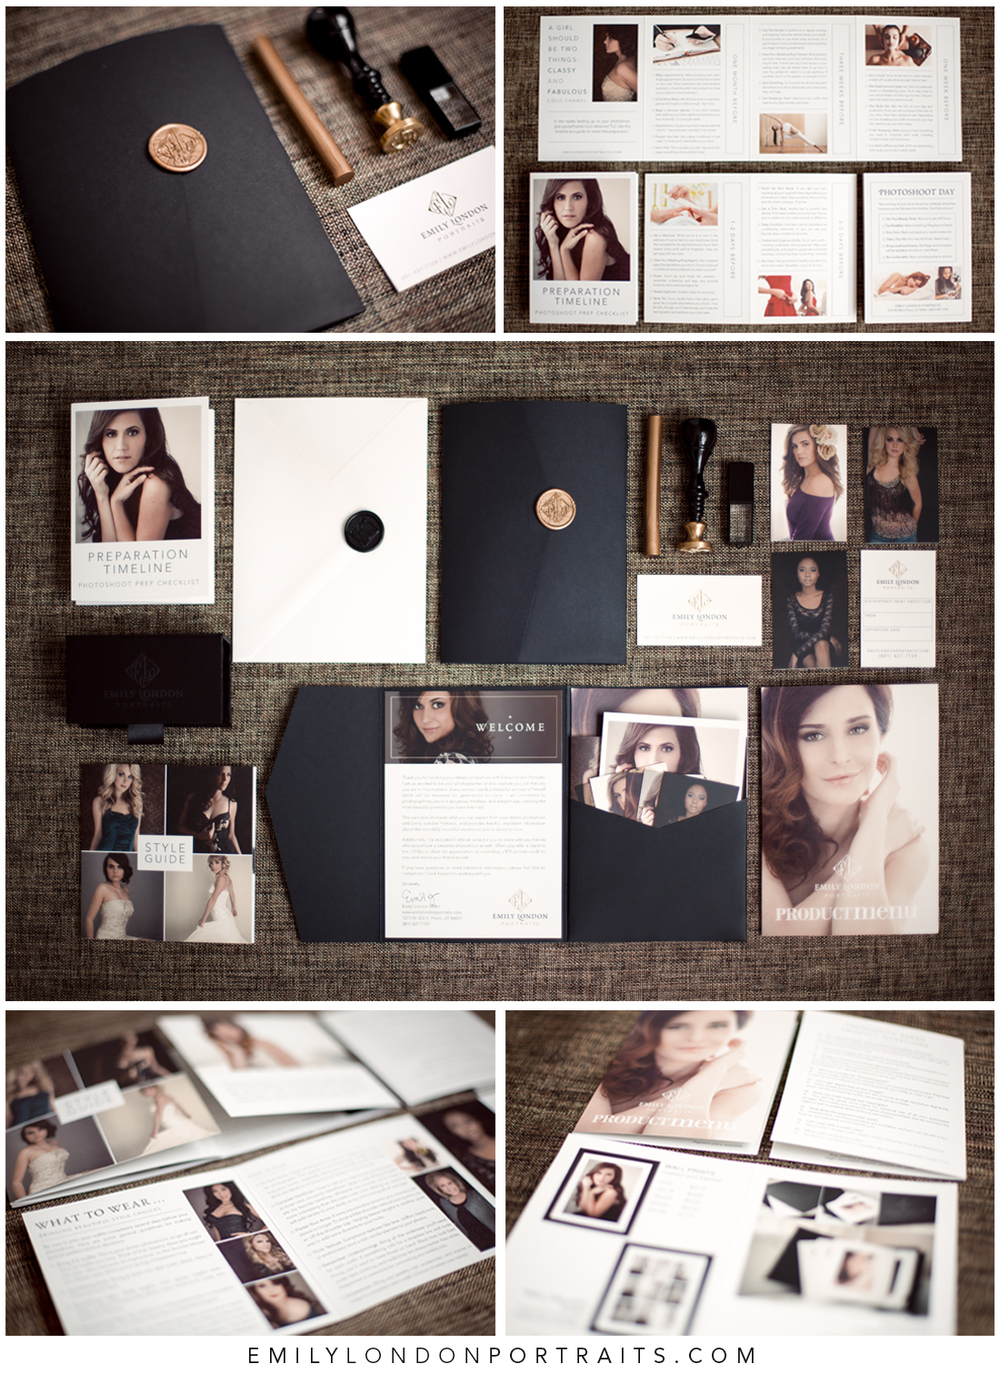 A beautiful welcome packet is sent to every client after she books a modern glamour photoshoot with Emily London Portraits in Utah.